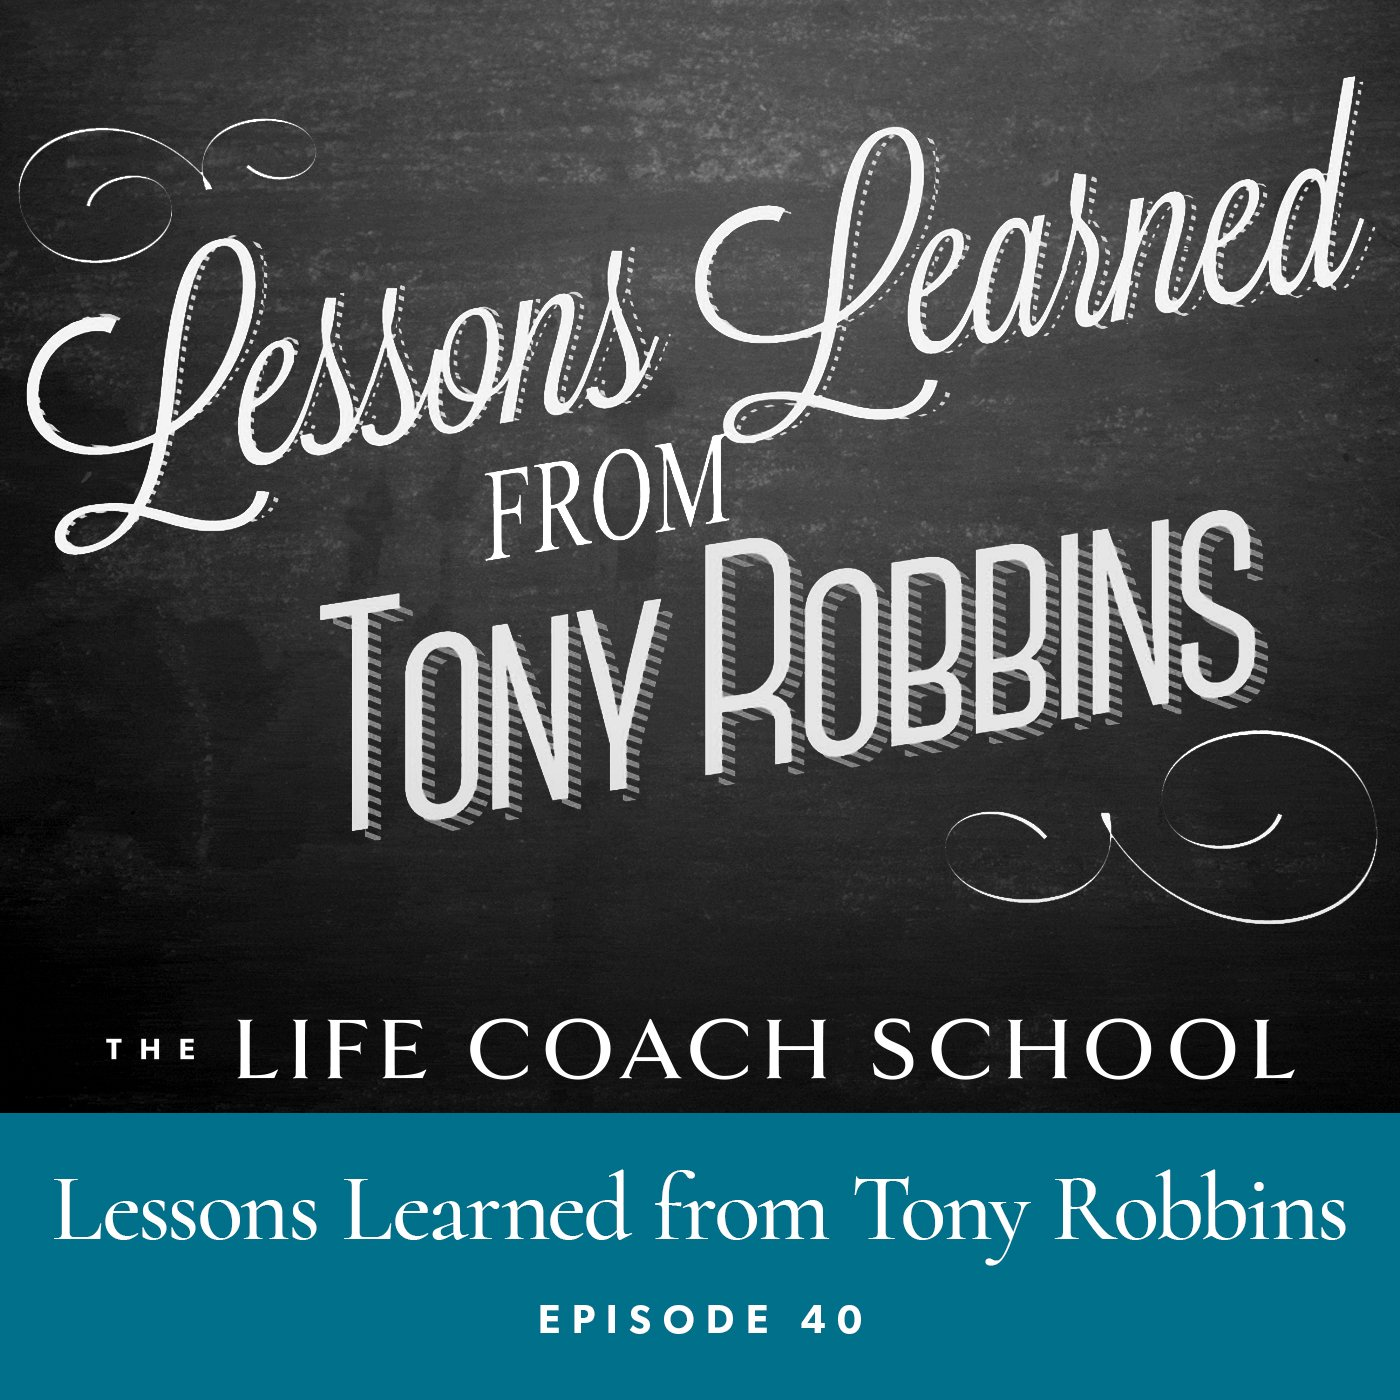 The Life Coach School Podcast | Episode 40 | Lessons Learned from Tony Robbins